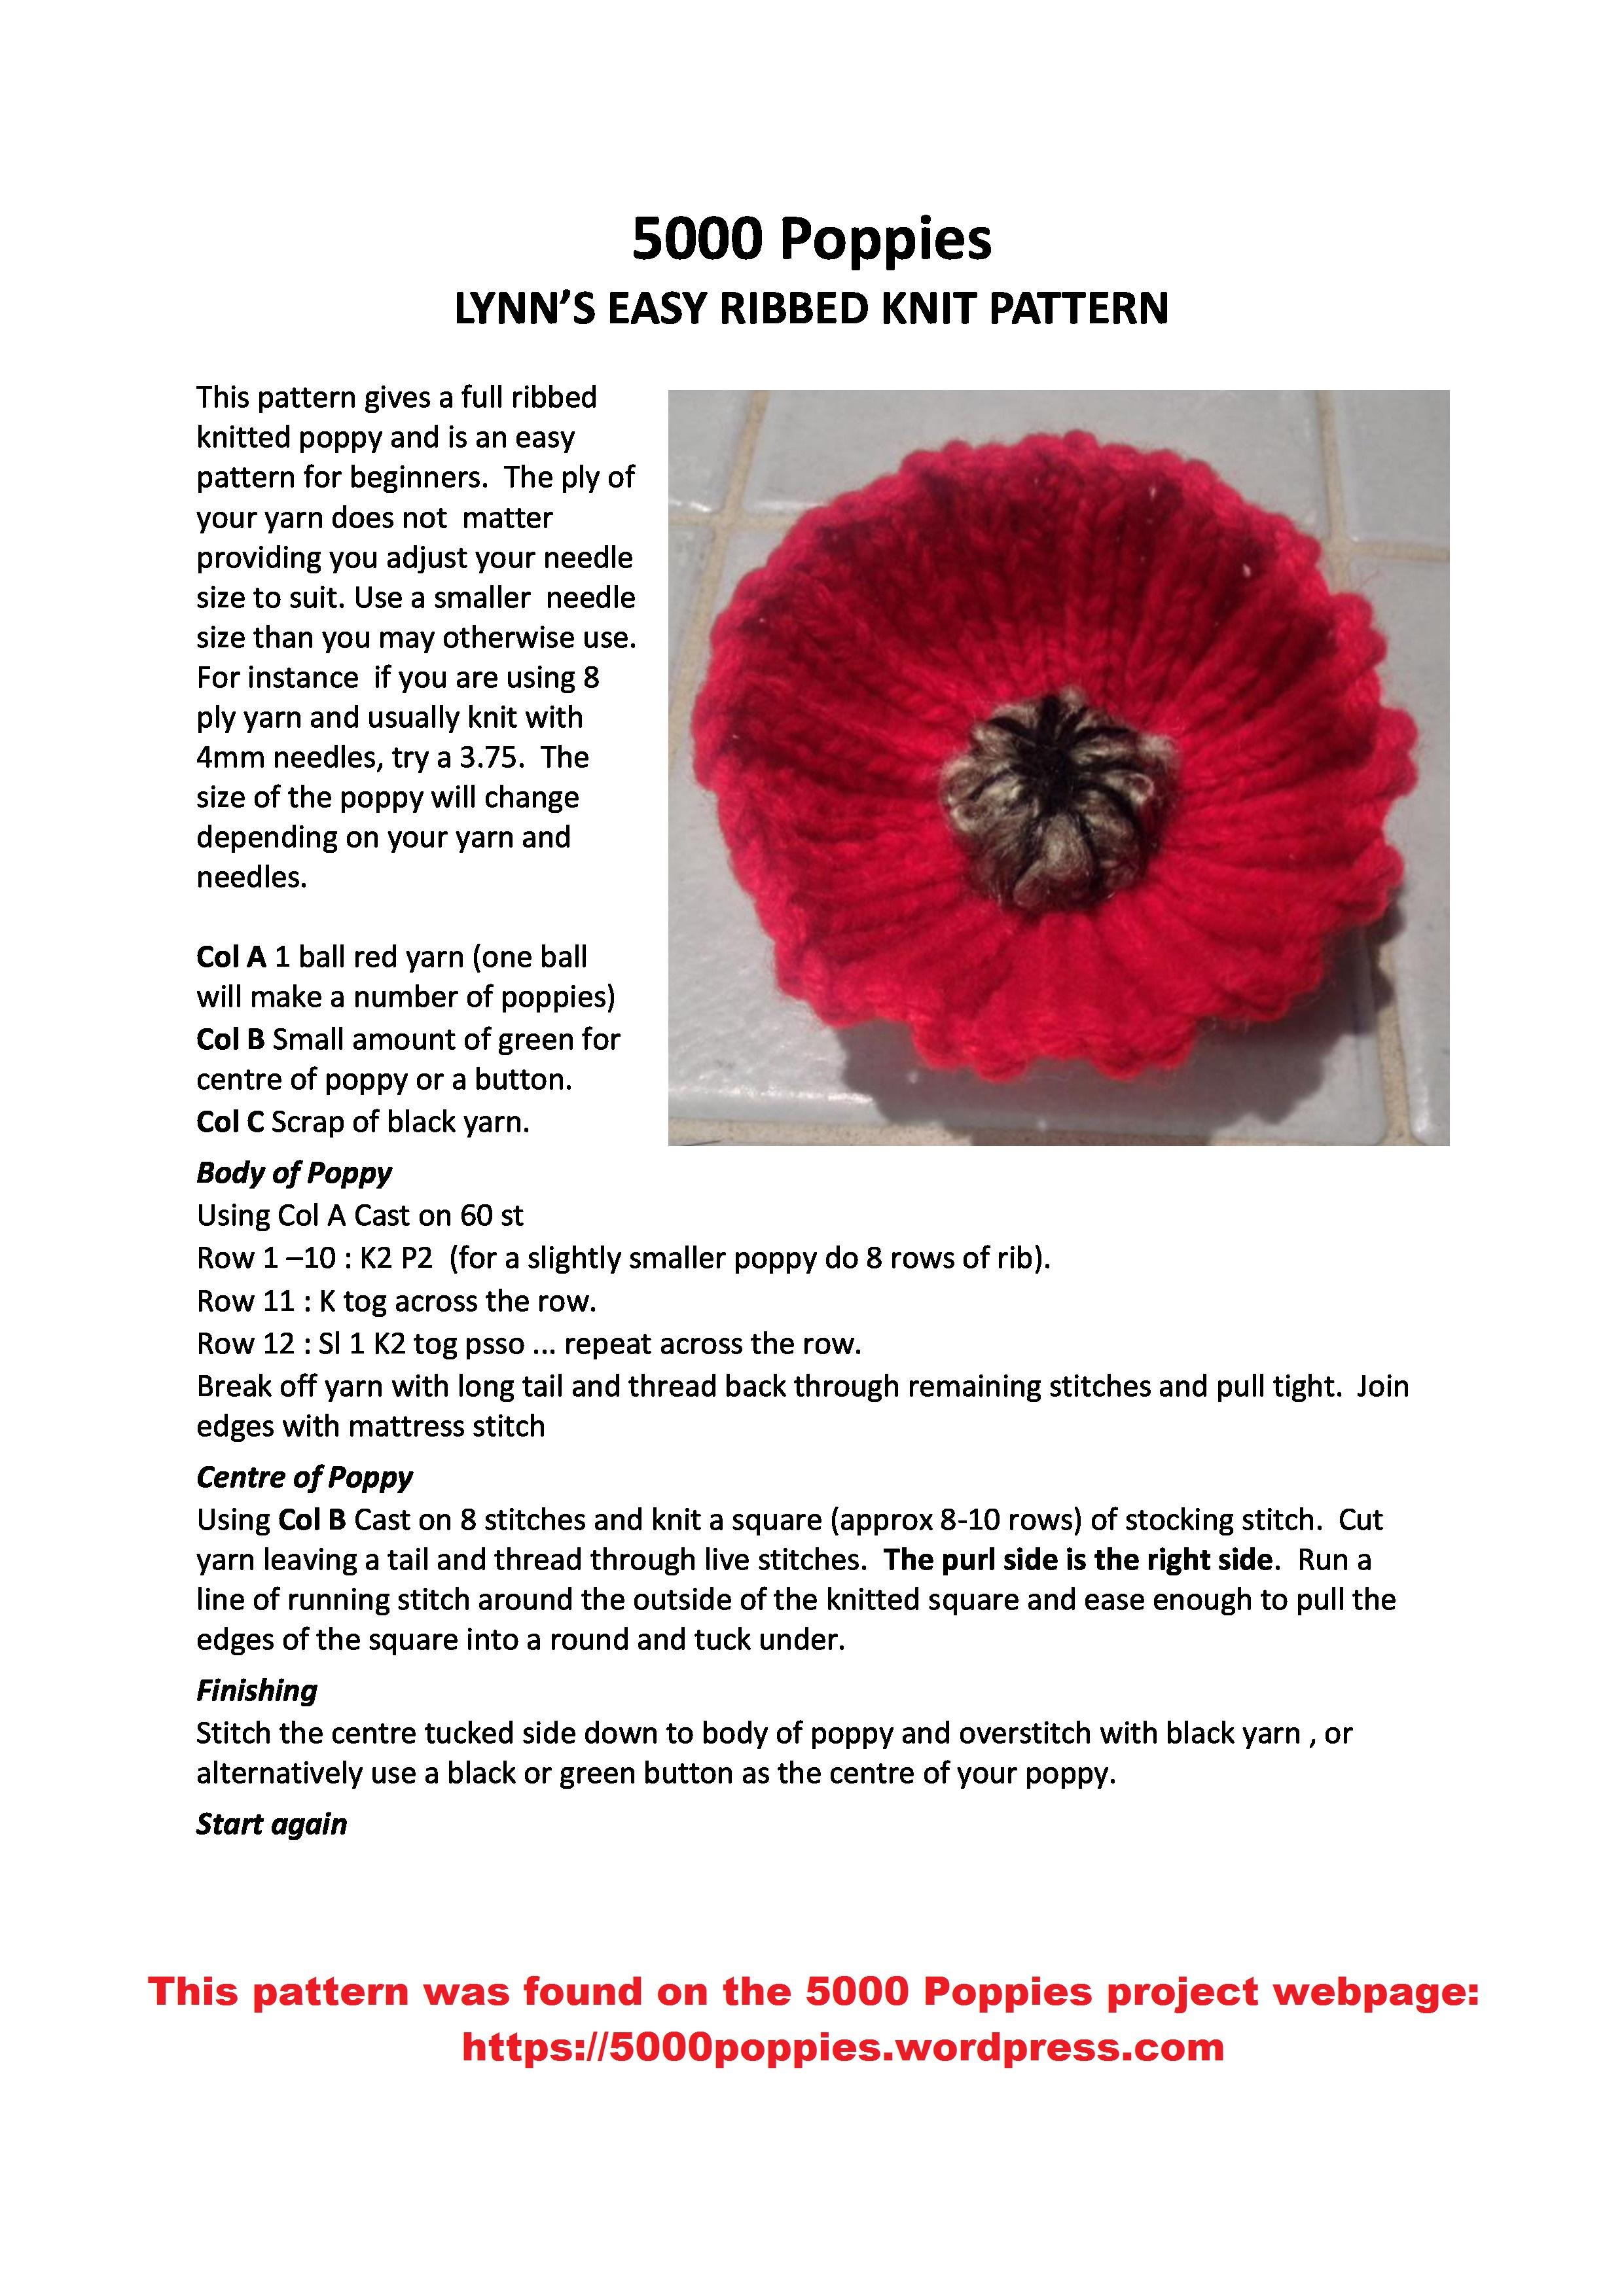 About the 2018 poppy project norfolk in world war one pattern 3 buycottarizona Images